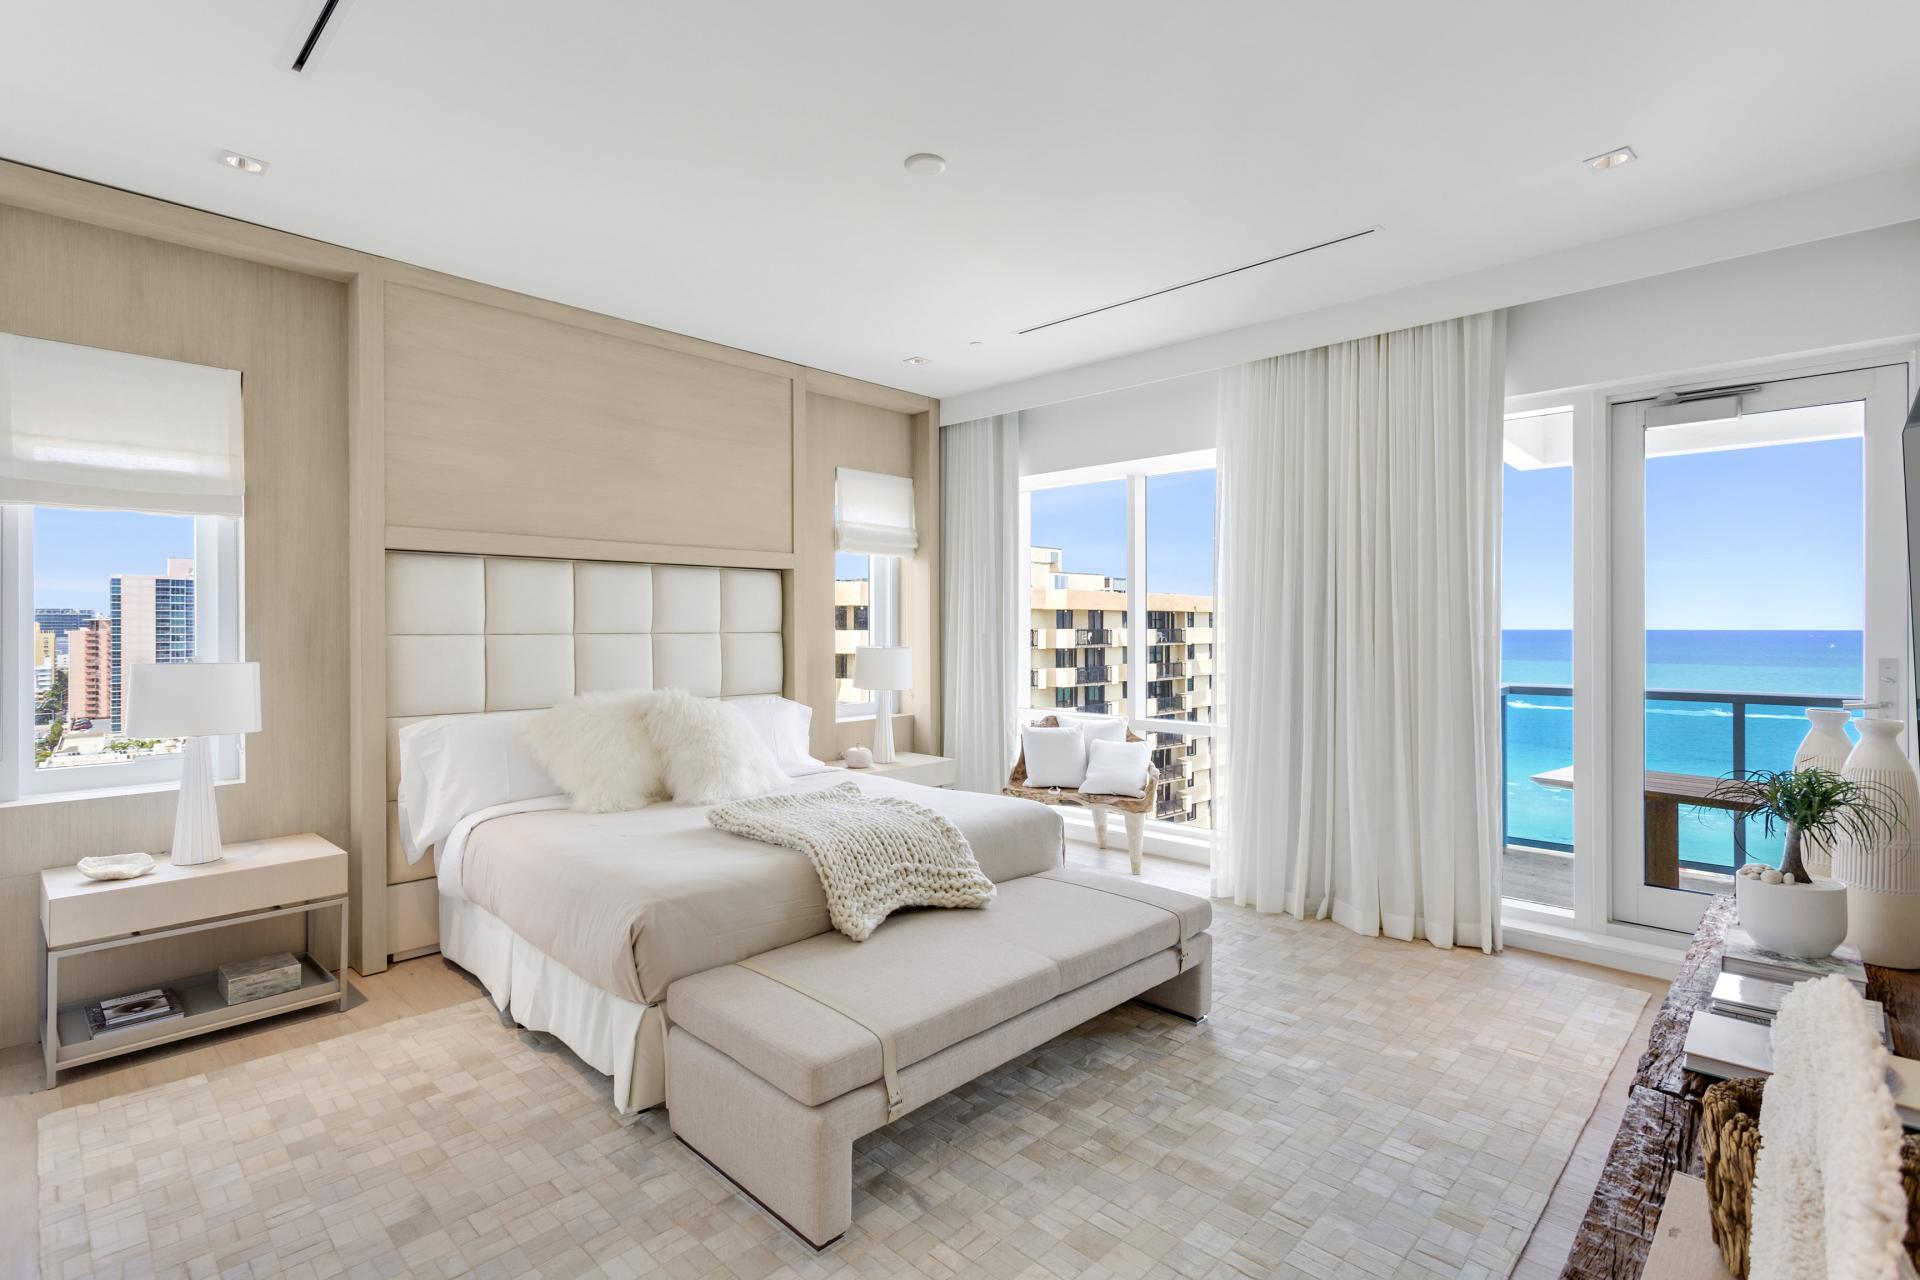 3BR ocean view penthouse with balcony - Kitchen